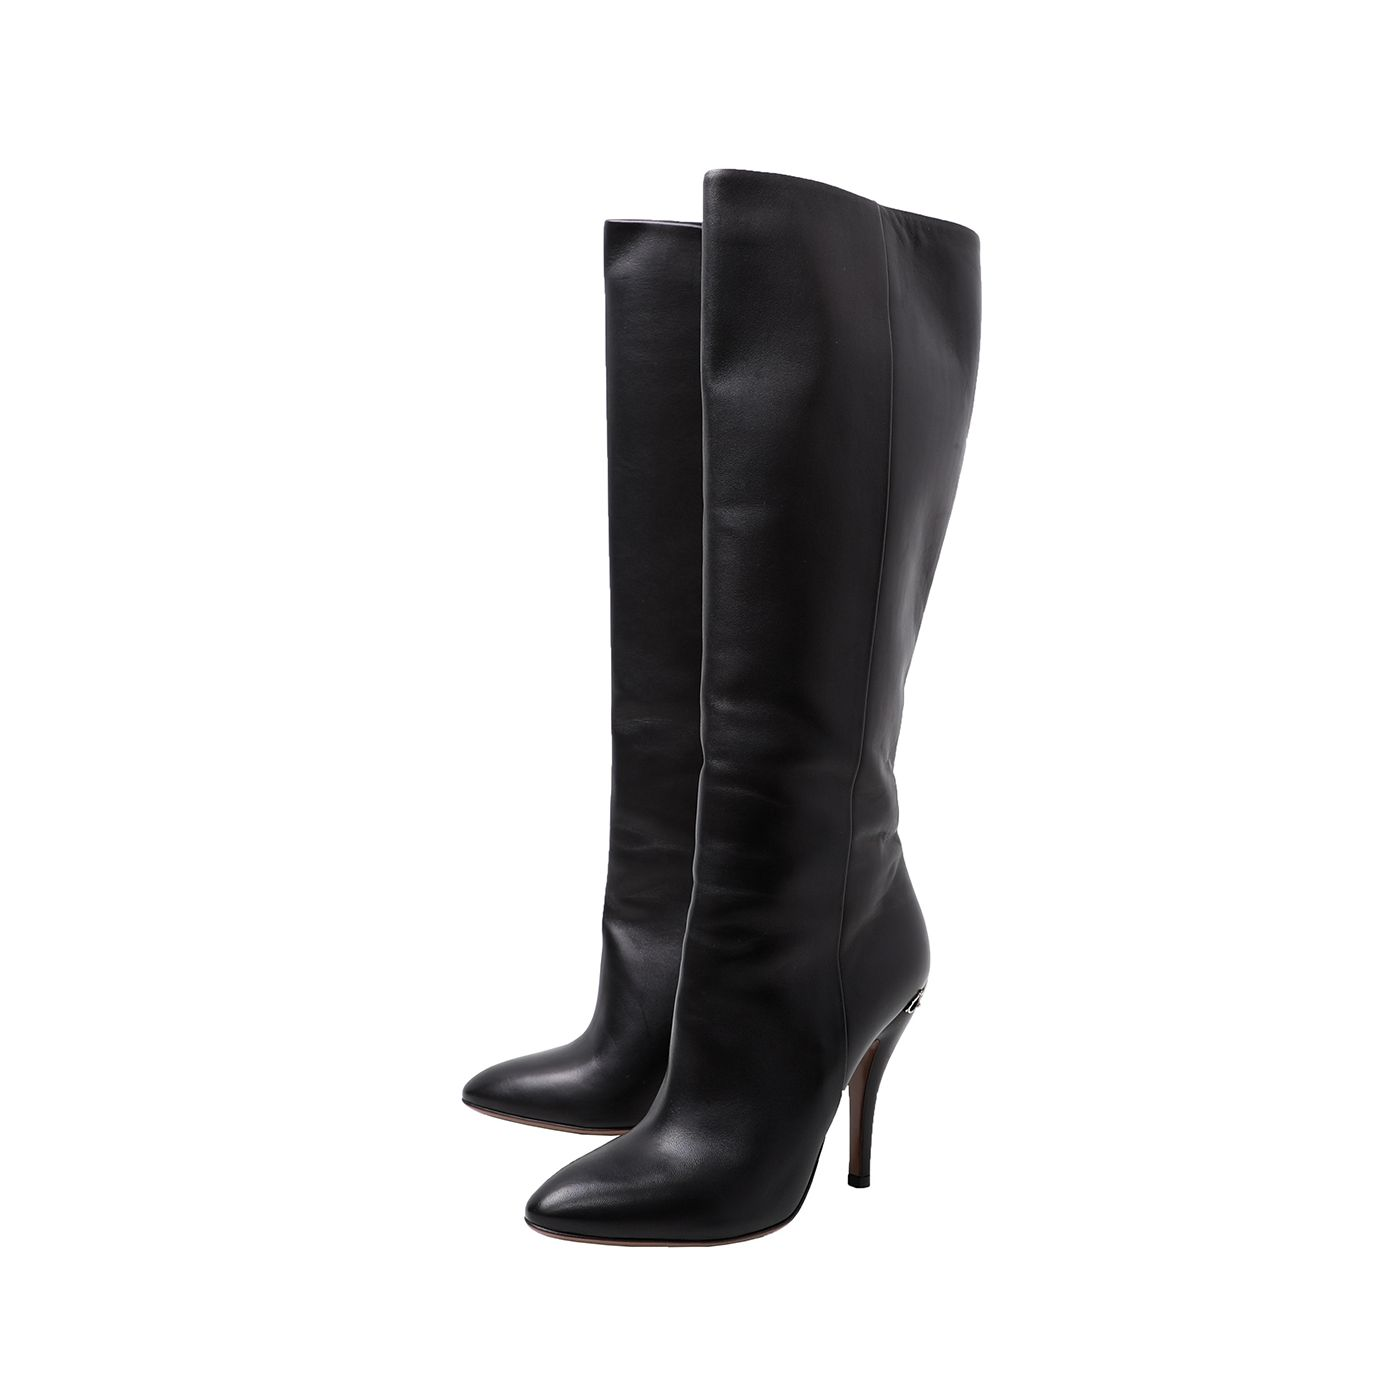 Gucci Black Adina Knee High Boots 38.5